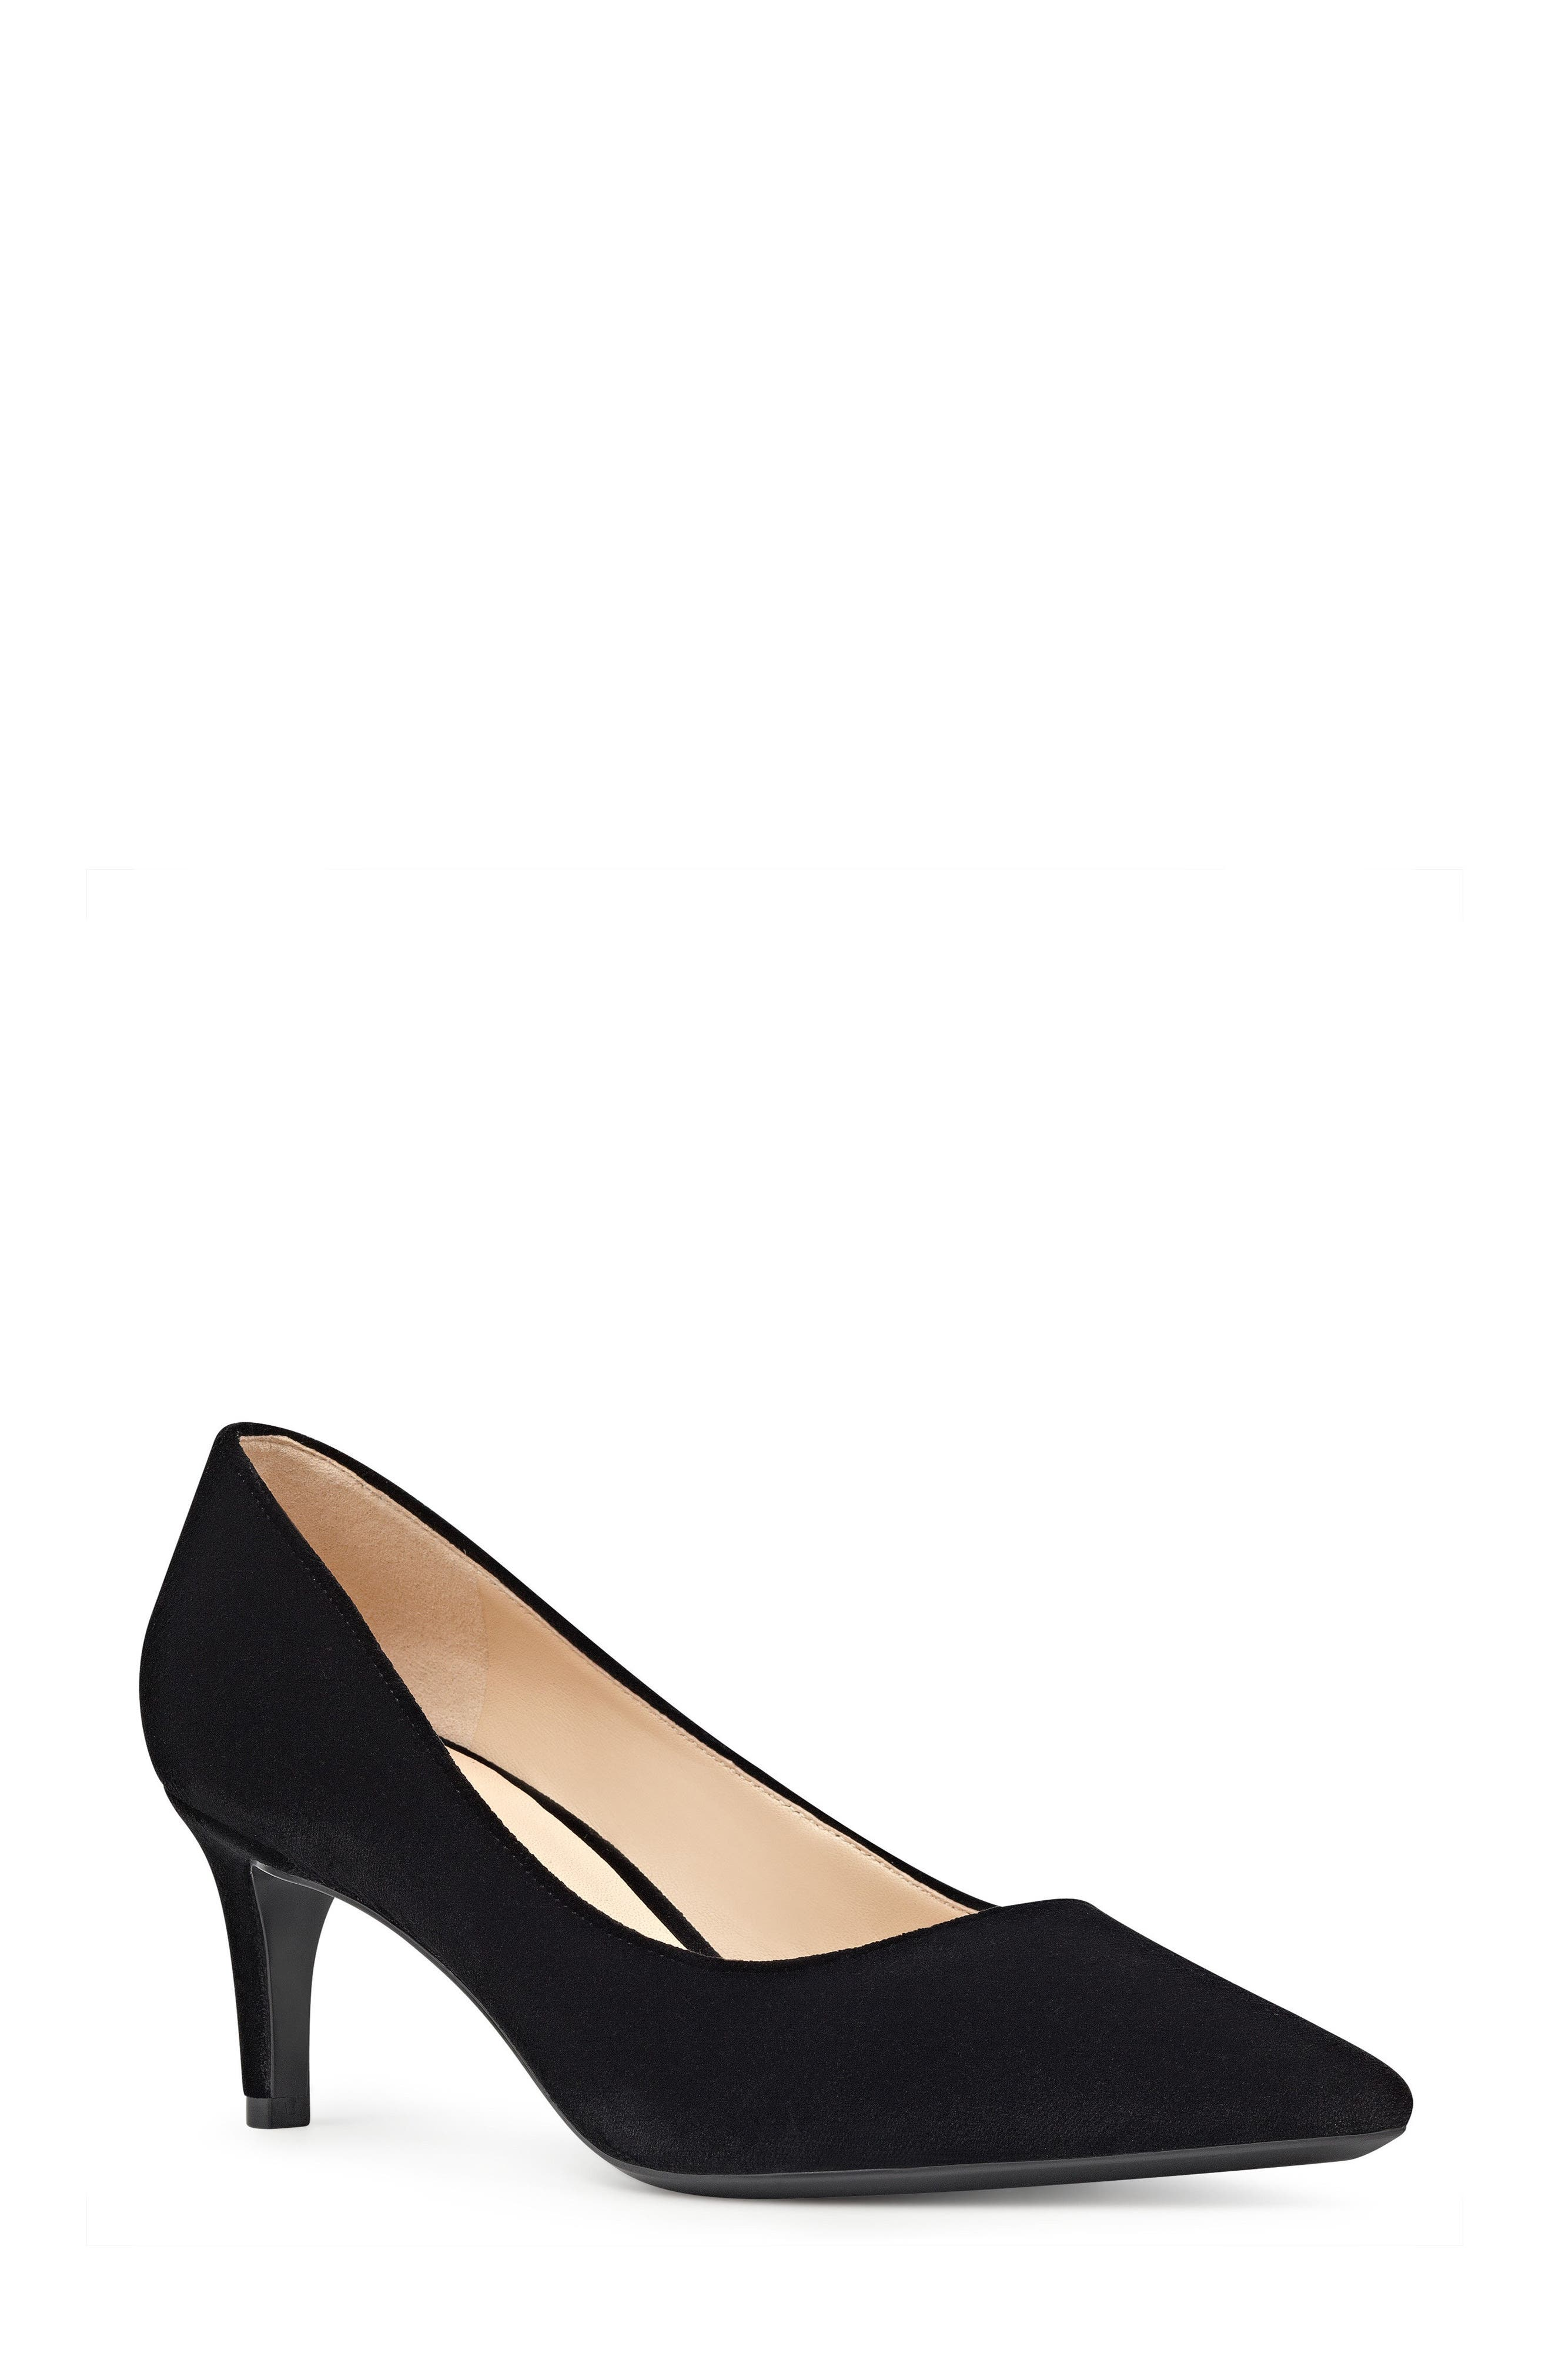 Soho Pointy Toe Pump,                             Main thumbnail 5, color,